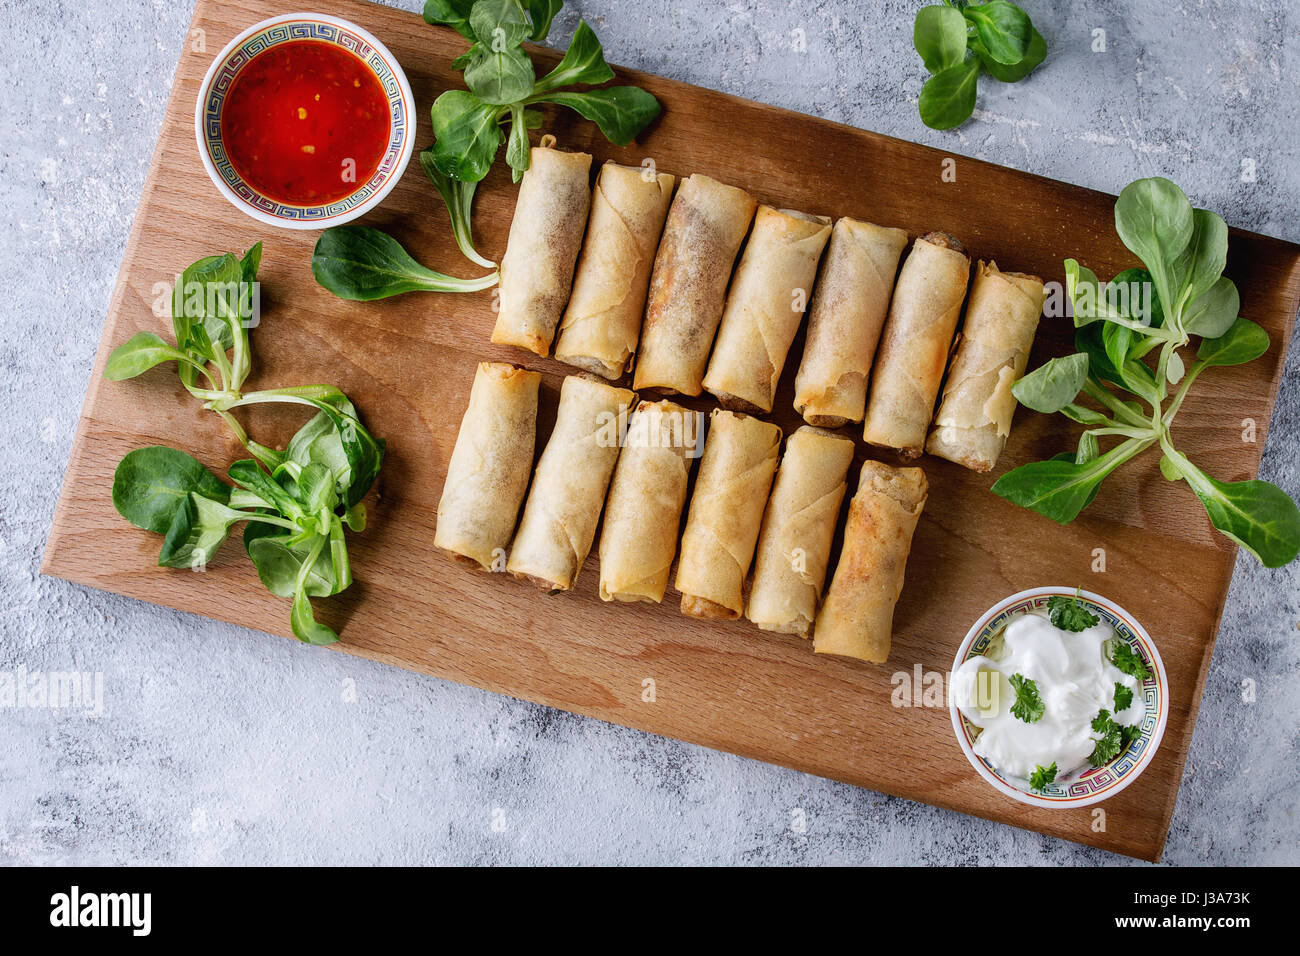 Fried spring rolls with sauce - Stock Image